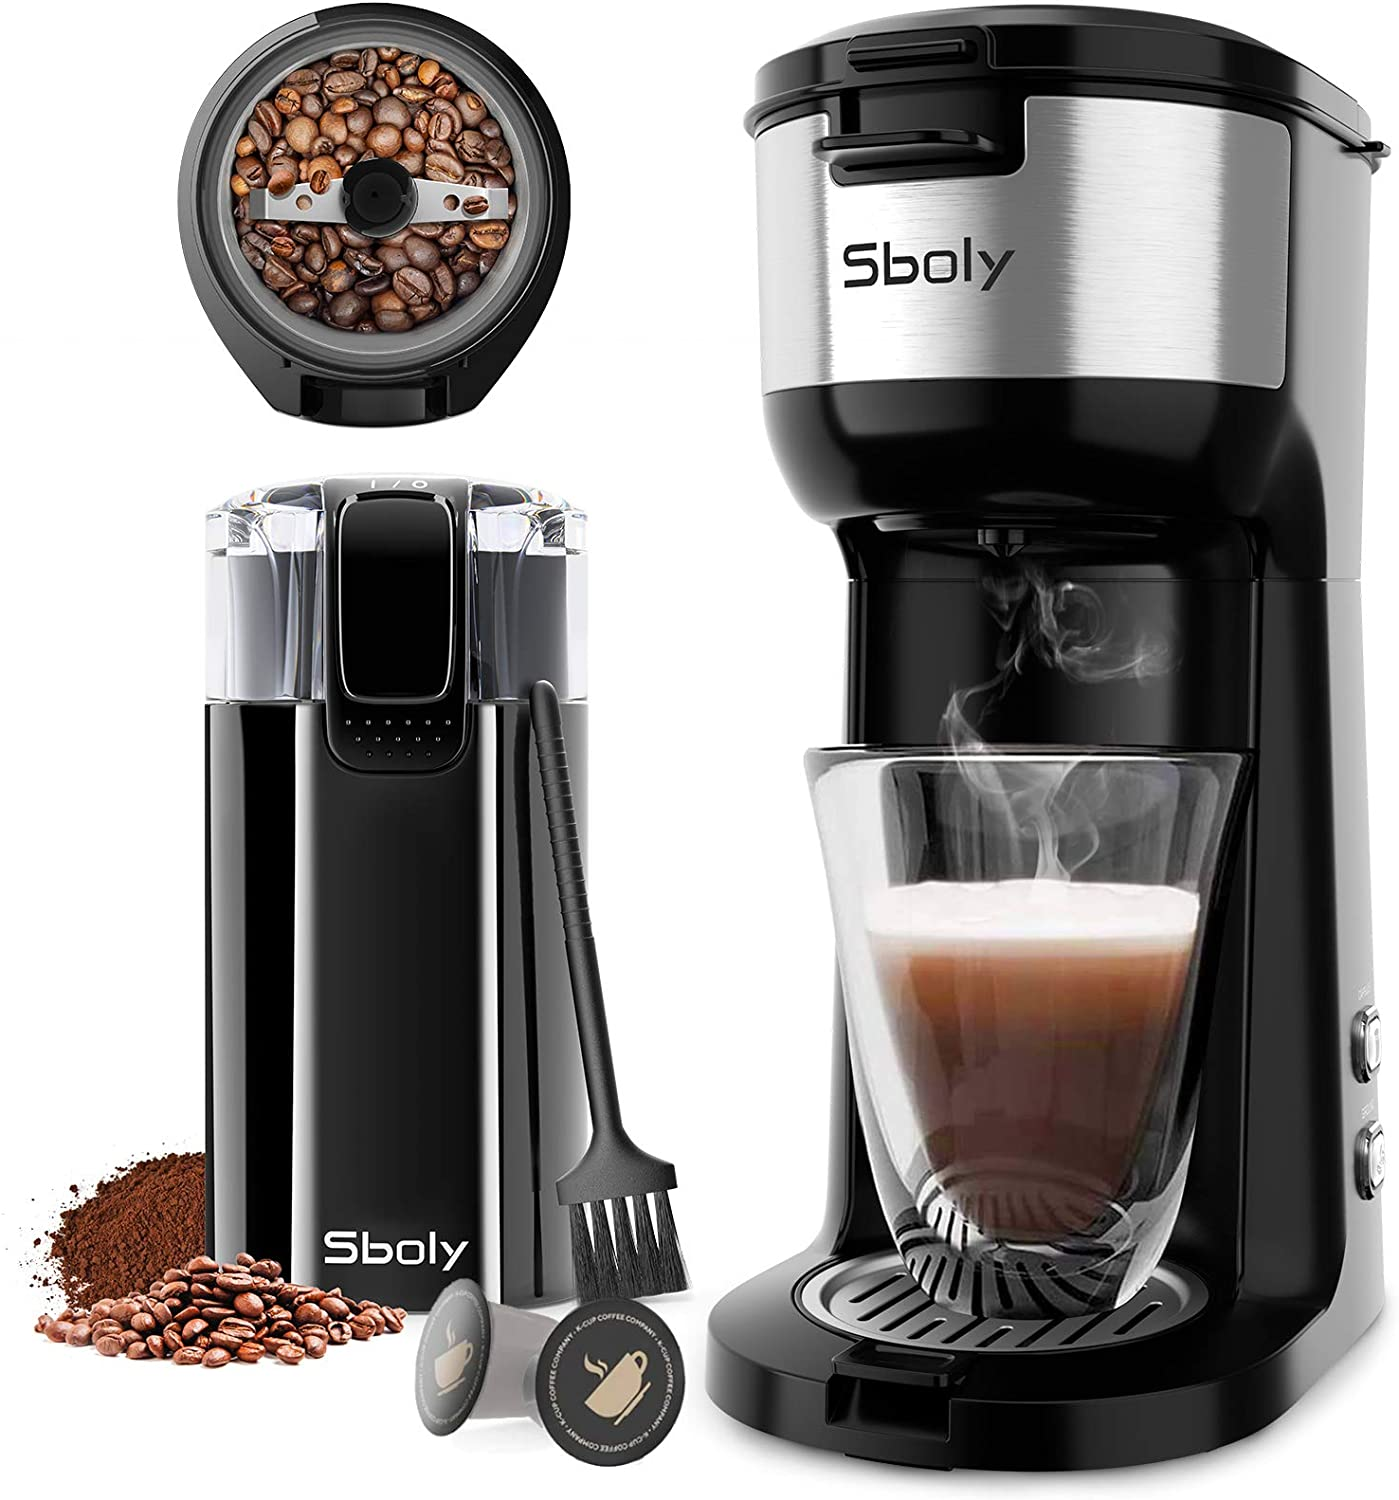 Grinder Coffee Brewer, Sboly Coffee Maker with Grinder, Single Serve Coffee Maker for K-Cup Pod & Ground Coffee, Electric Coffee Grinder with Stainless Steel Blades for Coffee Beans